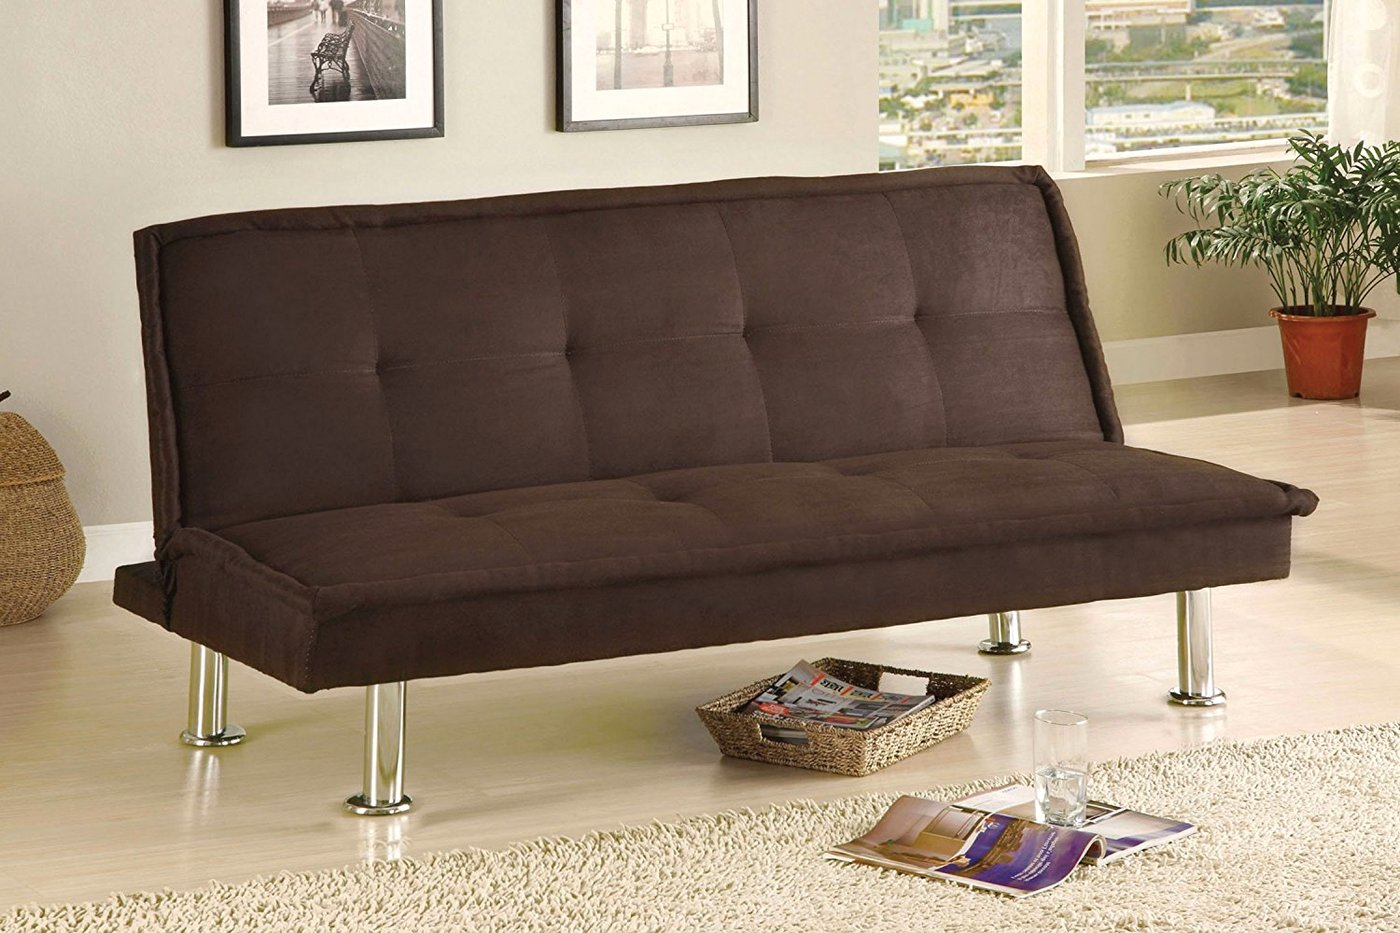 Melina II Contemporary Futon Sofabed with Brown Microfiber Seating ...